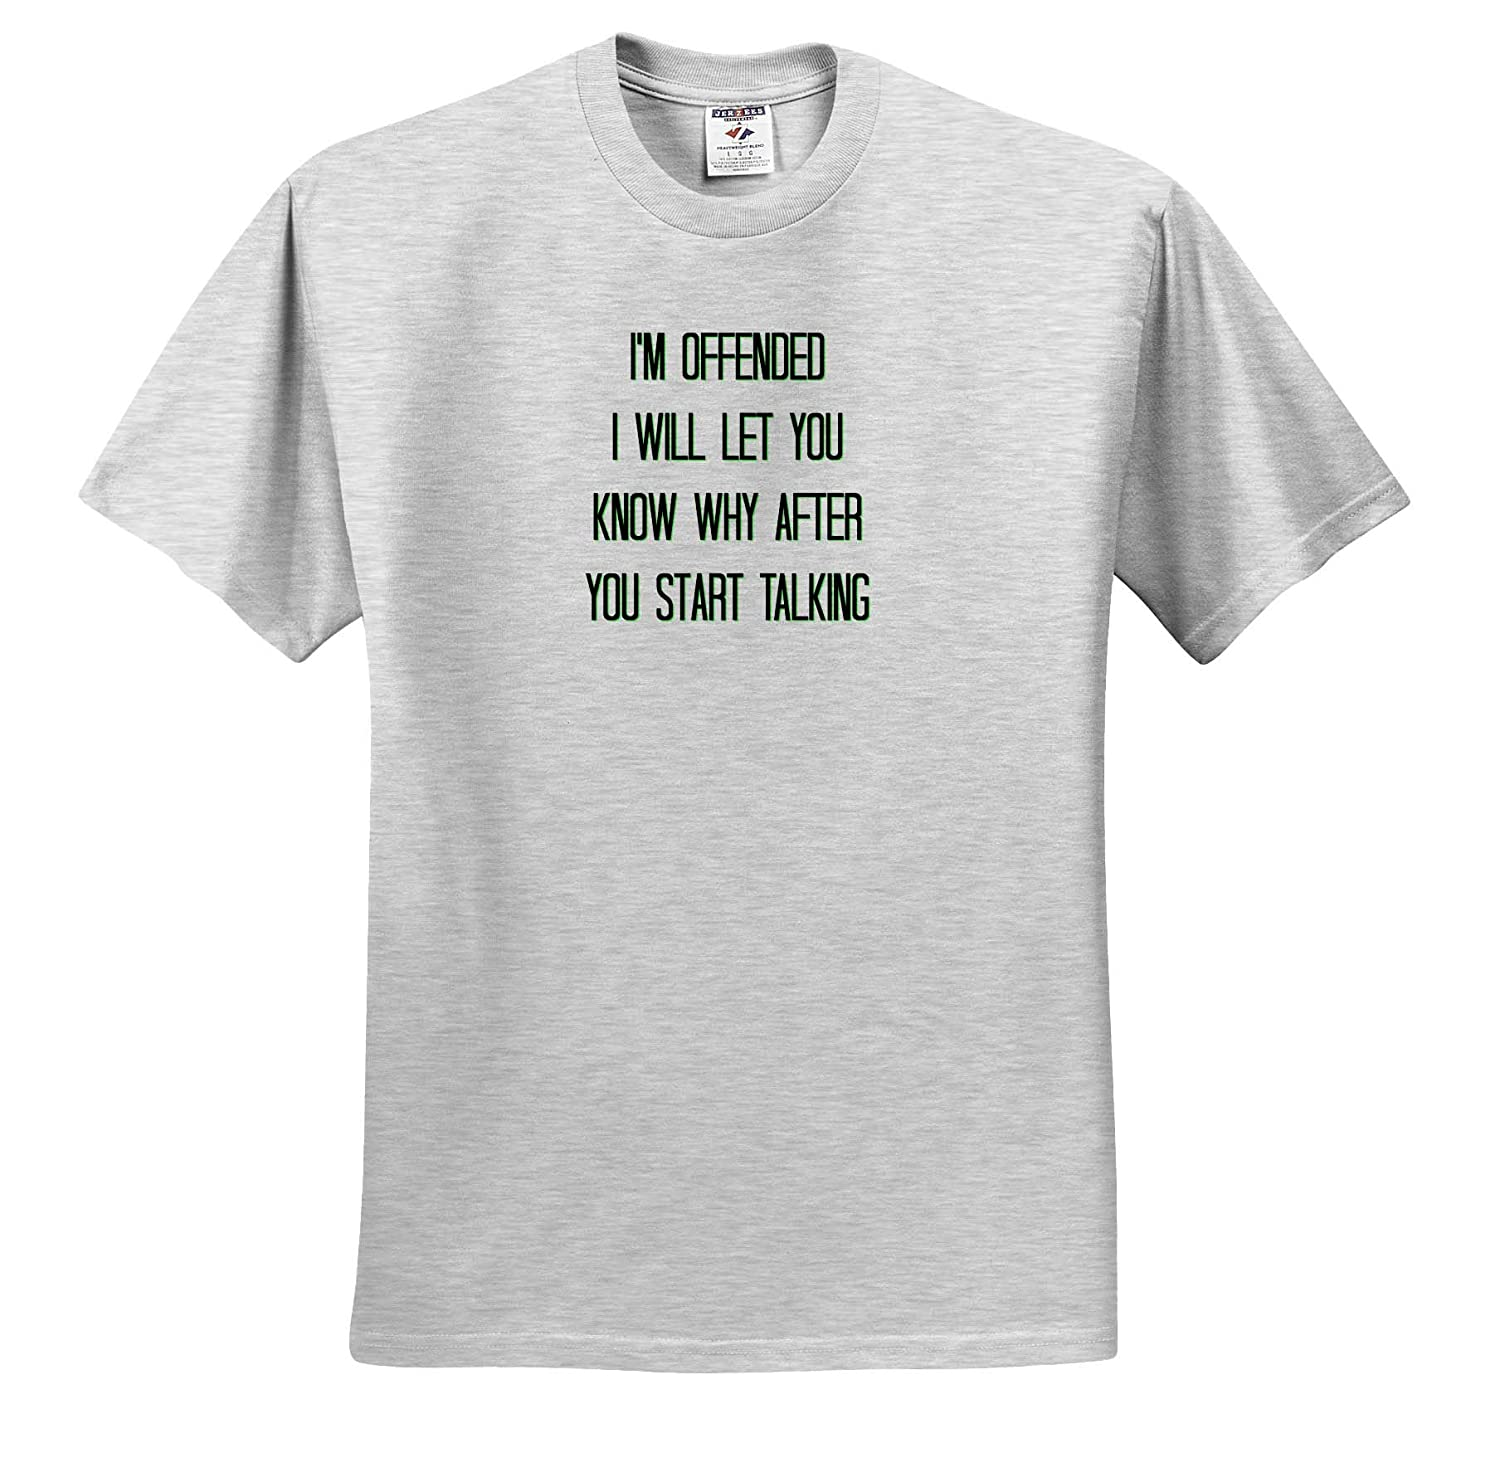 Adult T-Shirt XL Image of Im Offended Start Talking and Ill Tell You Why ts/_316702 3dRose Carrie Merchant Image